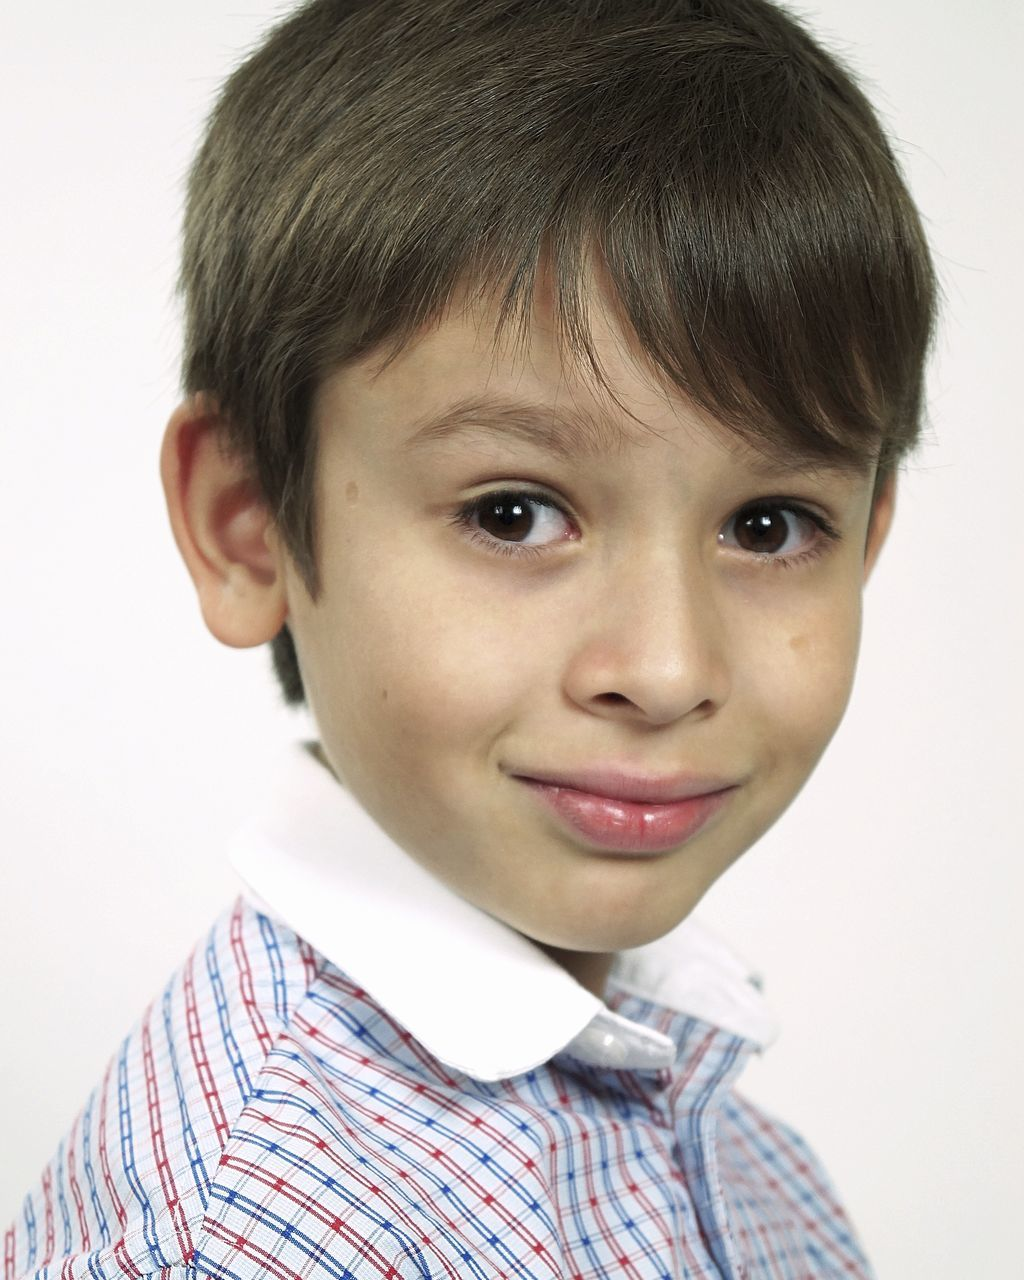 portrait, childhood, looking at camera, boys, headshot, one person, smiling, innocence, studio shot, head and shoulders, white background, real people, cute, happiness, human face, close-up, indoors, one boy only, people